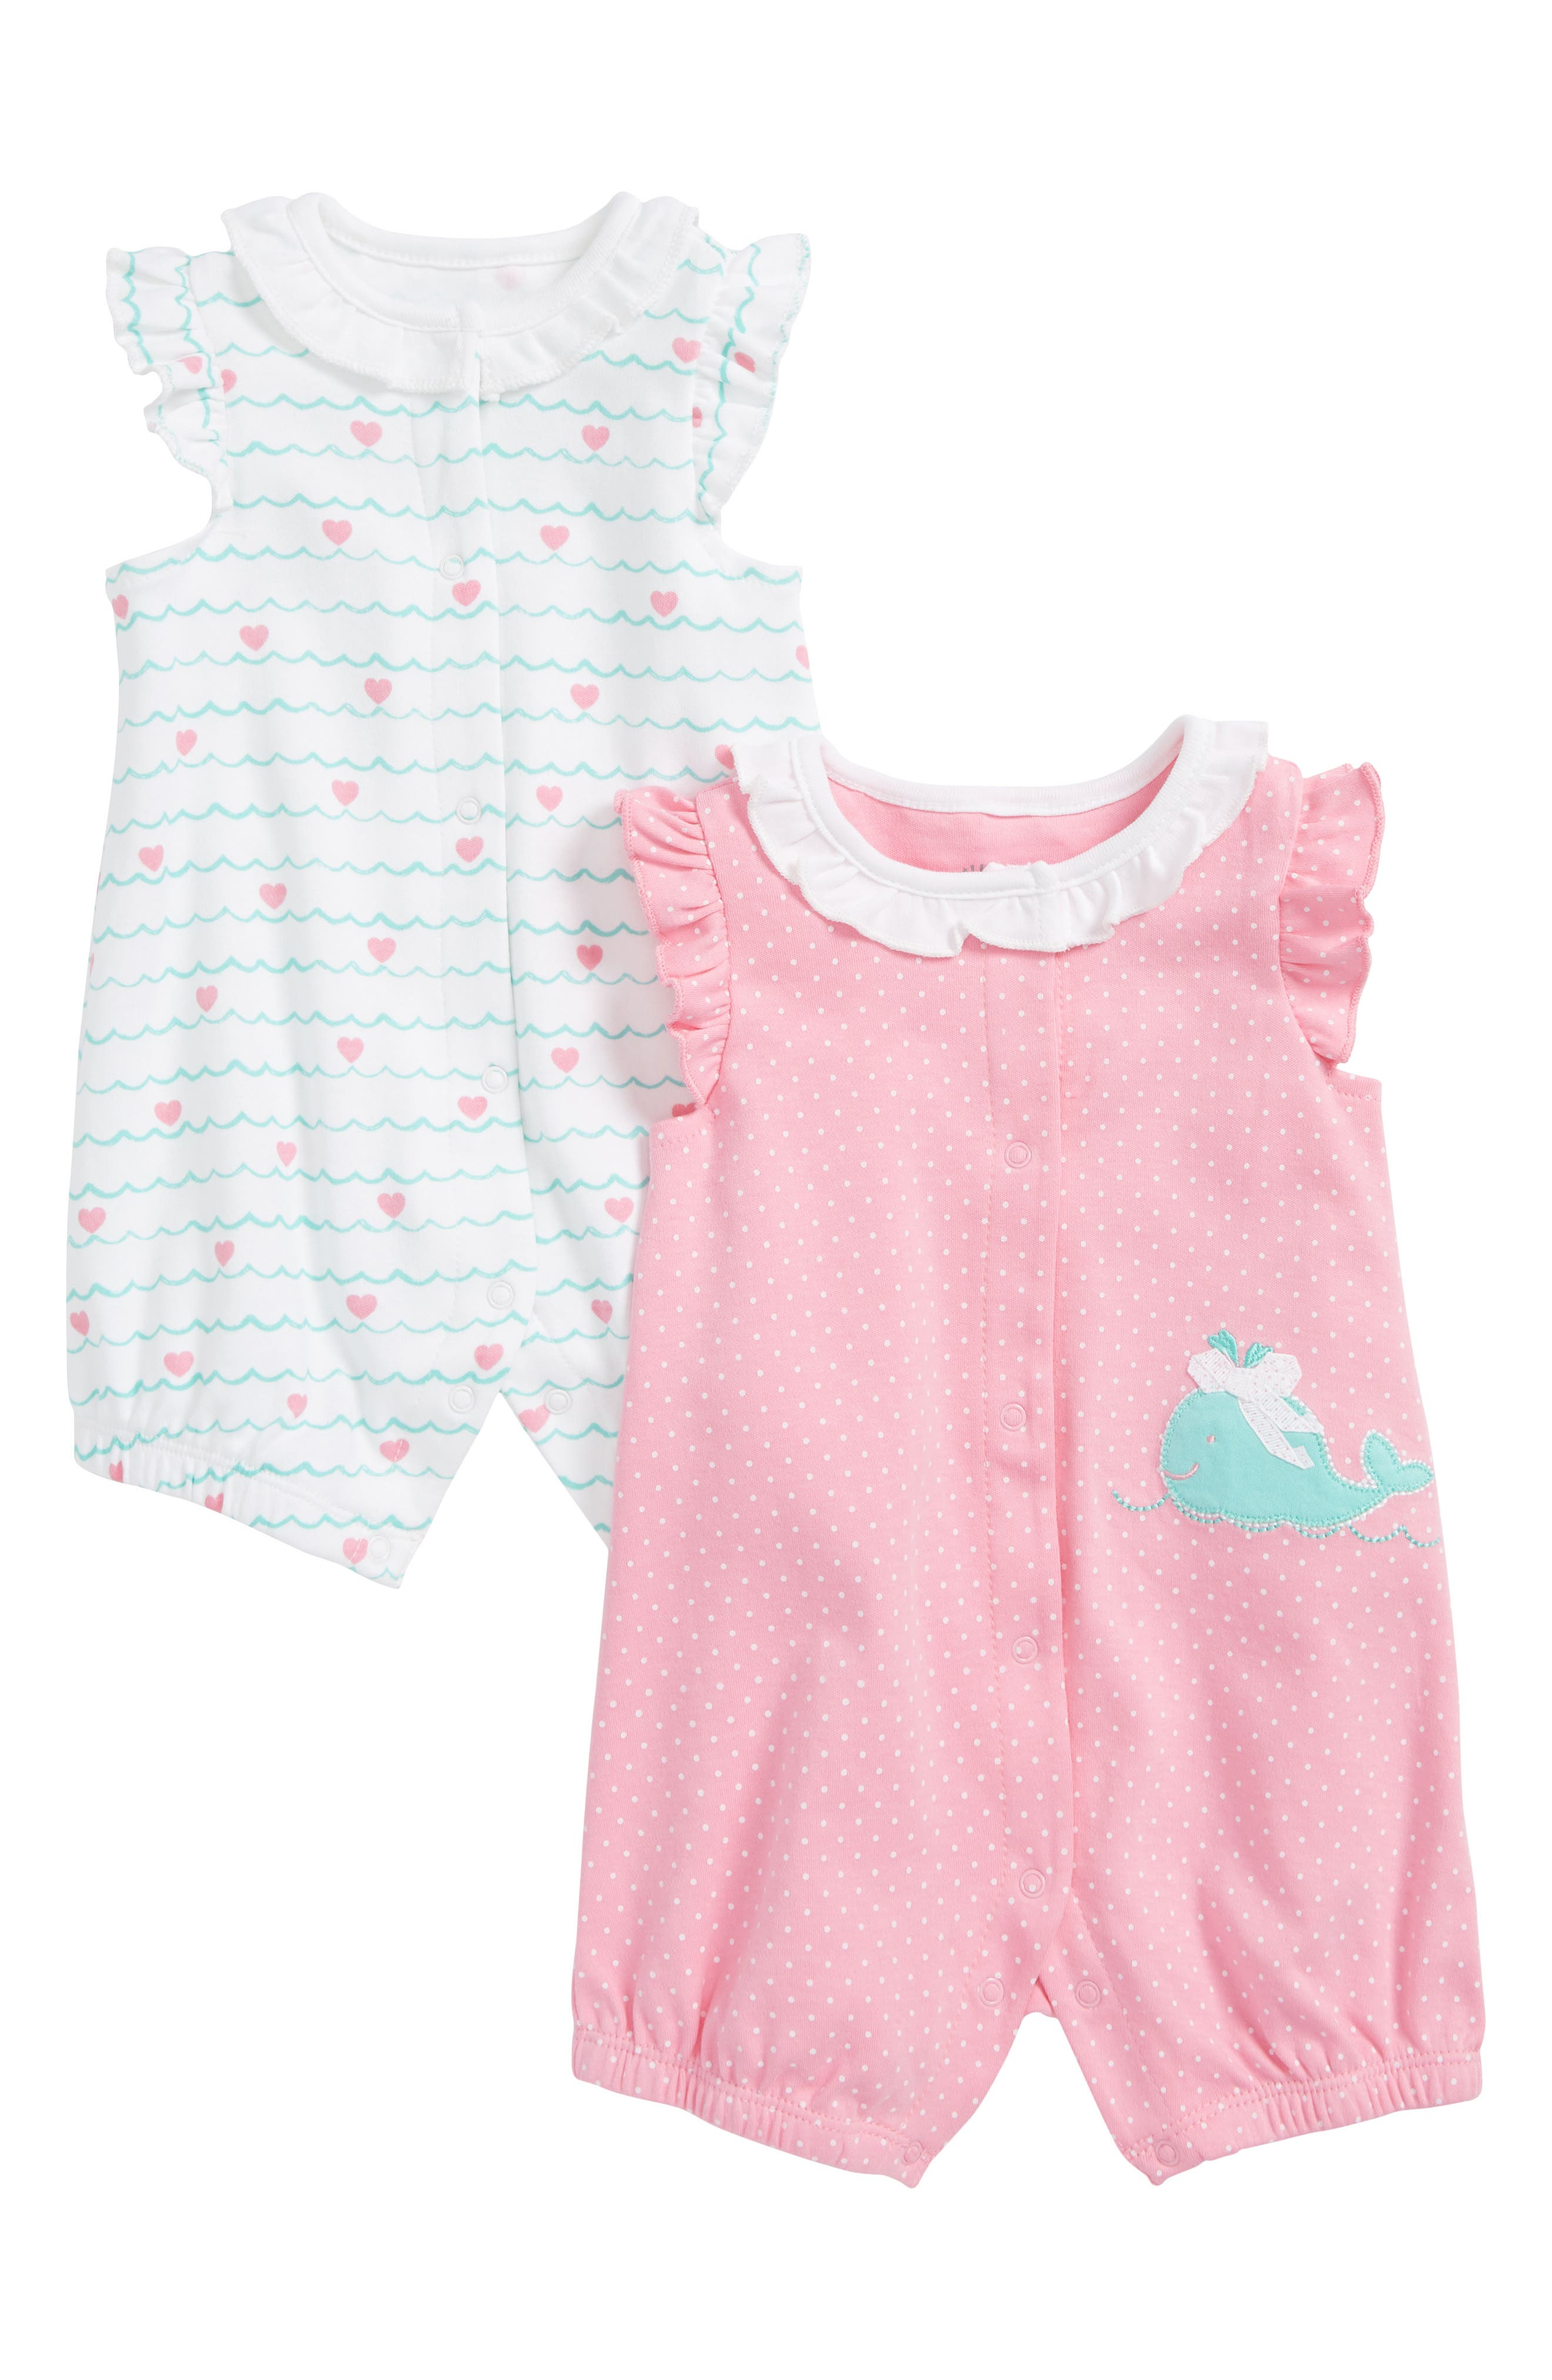 Whale 2-Pack Rompers,                         Main,                         color, Pink Multi